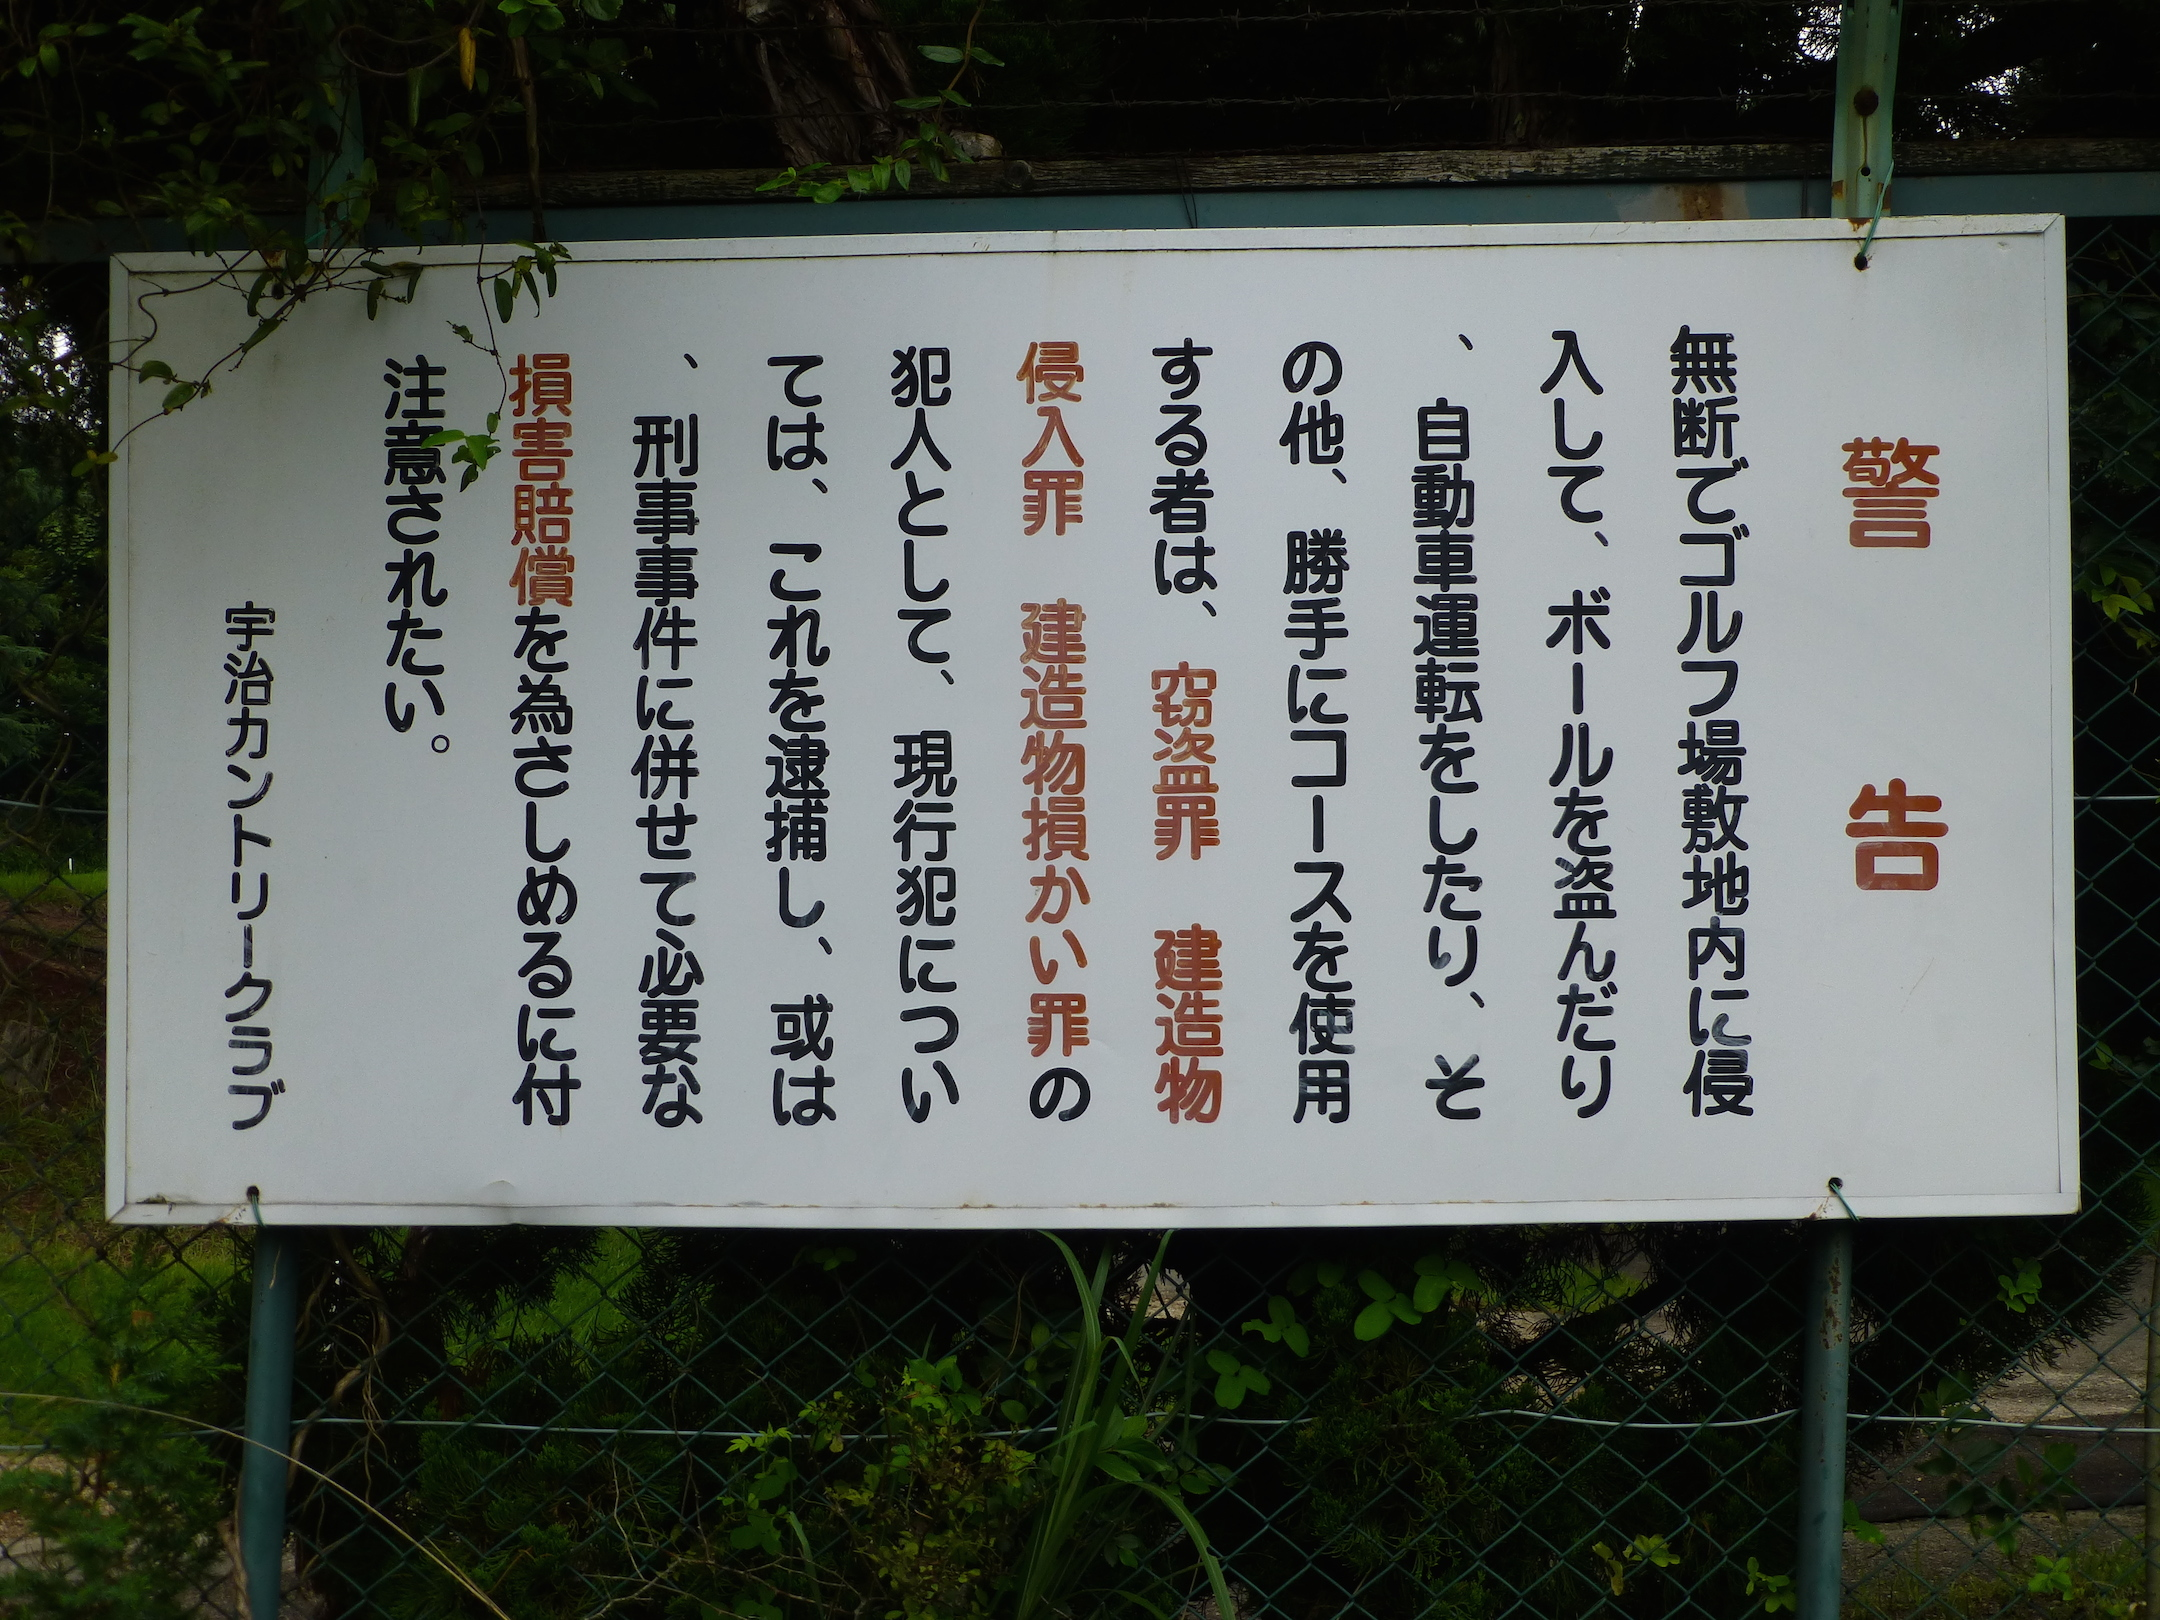 A sign with Japanese text